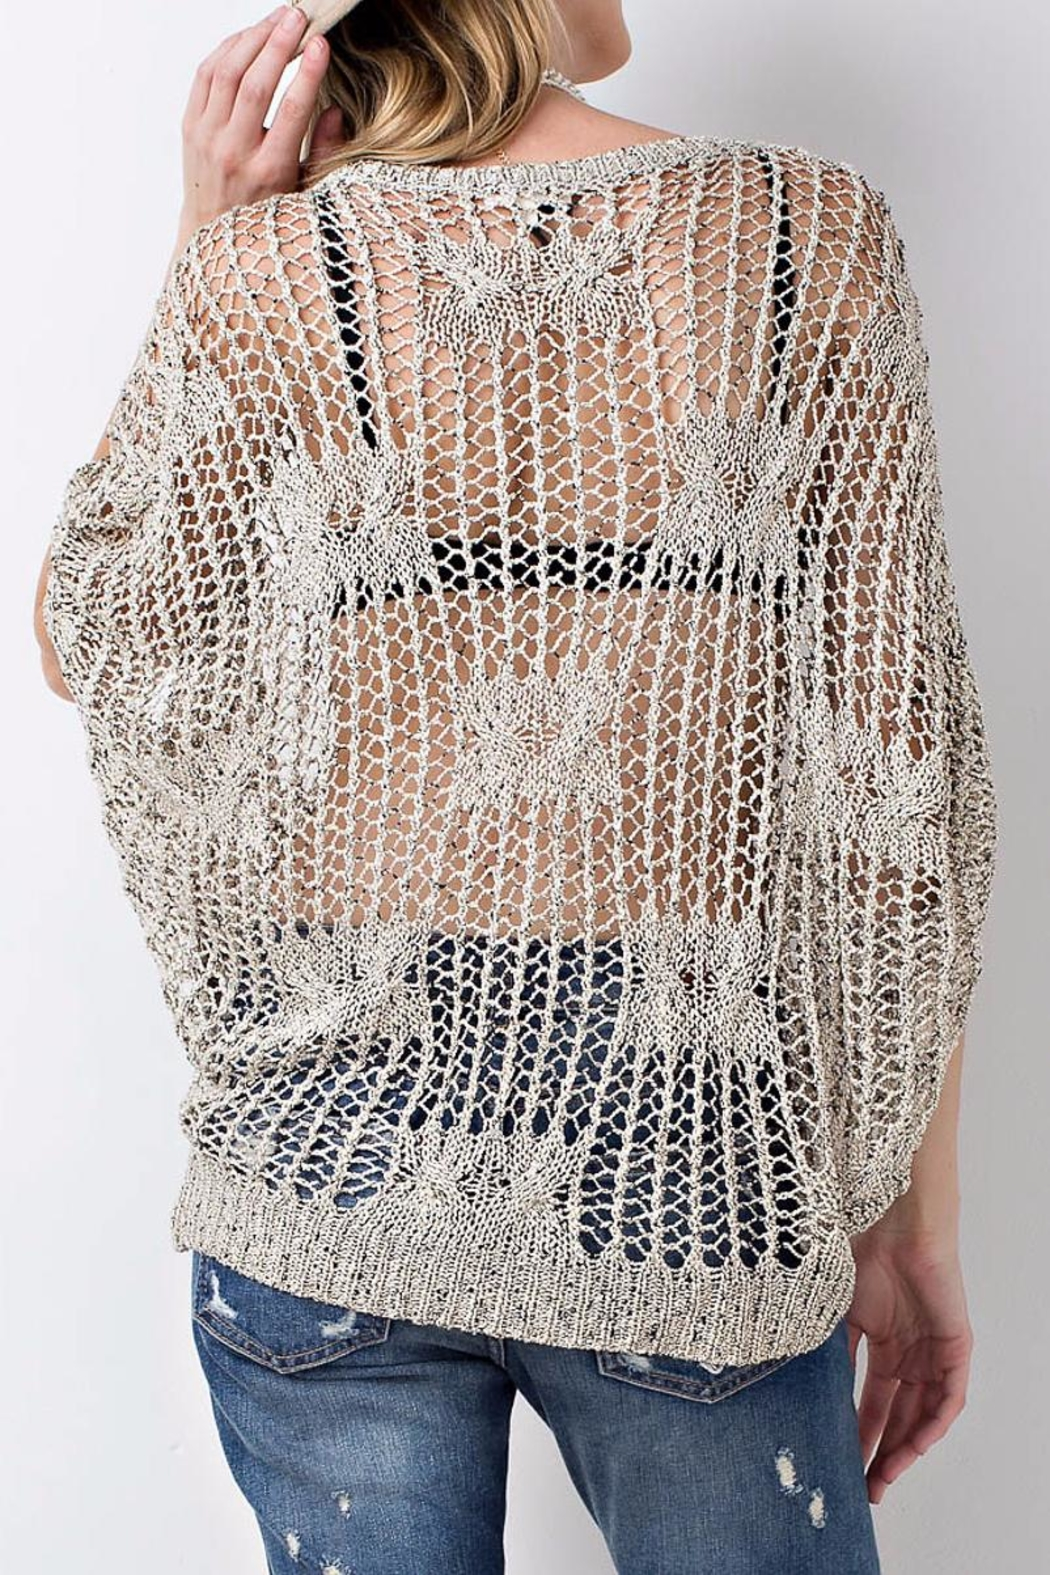 People Outfitter Crochet Knit Sweater Top - Front Full Image